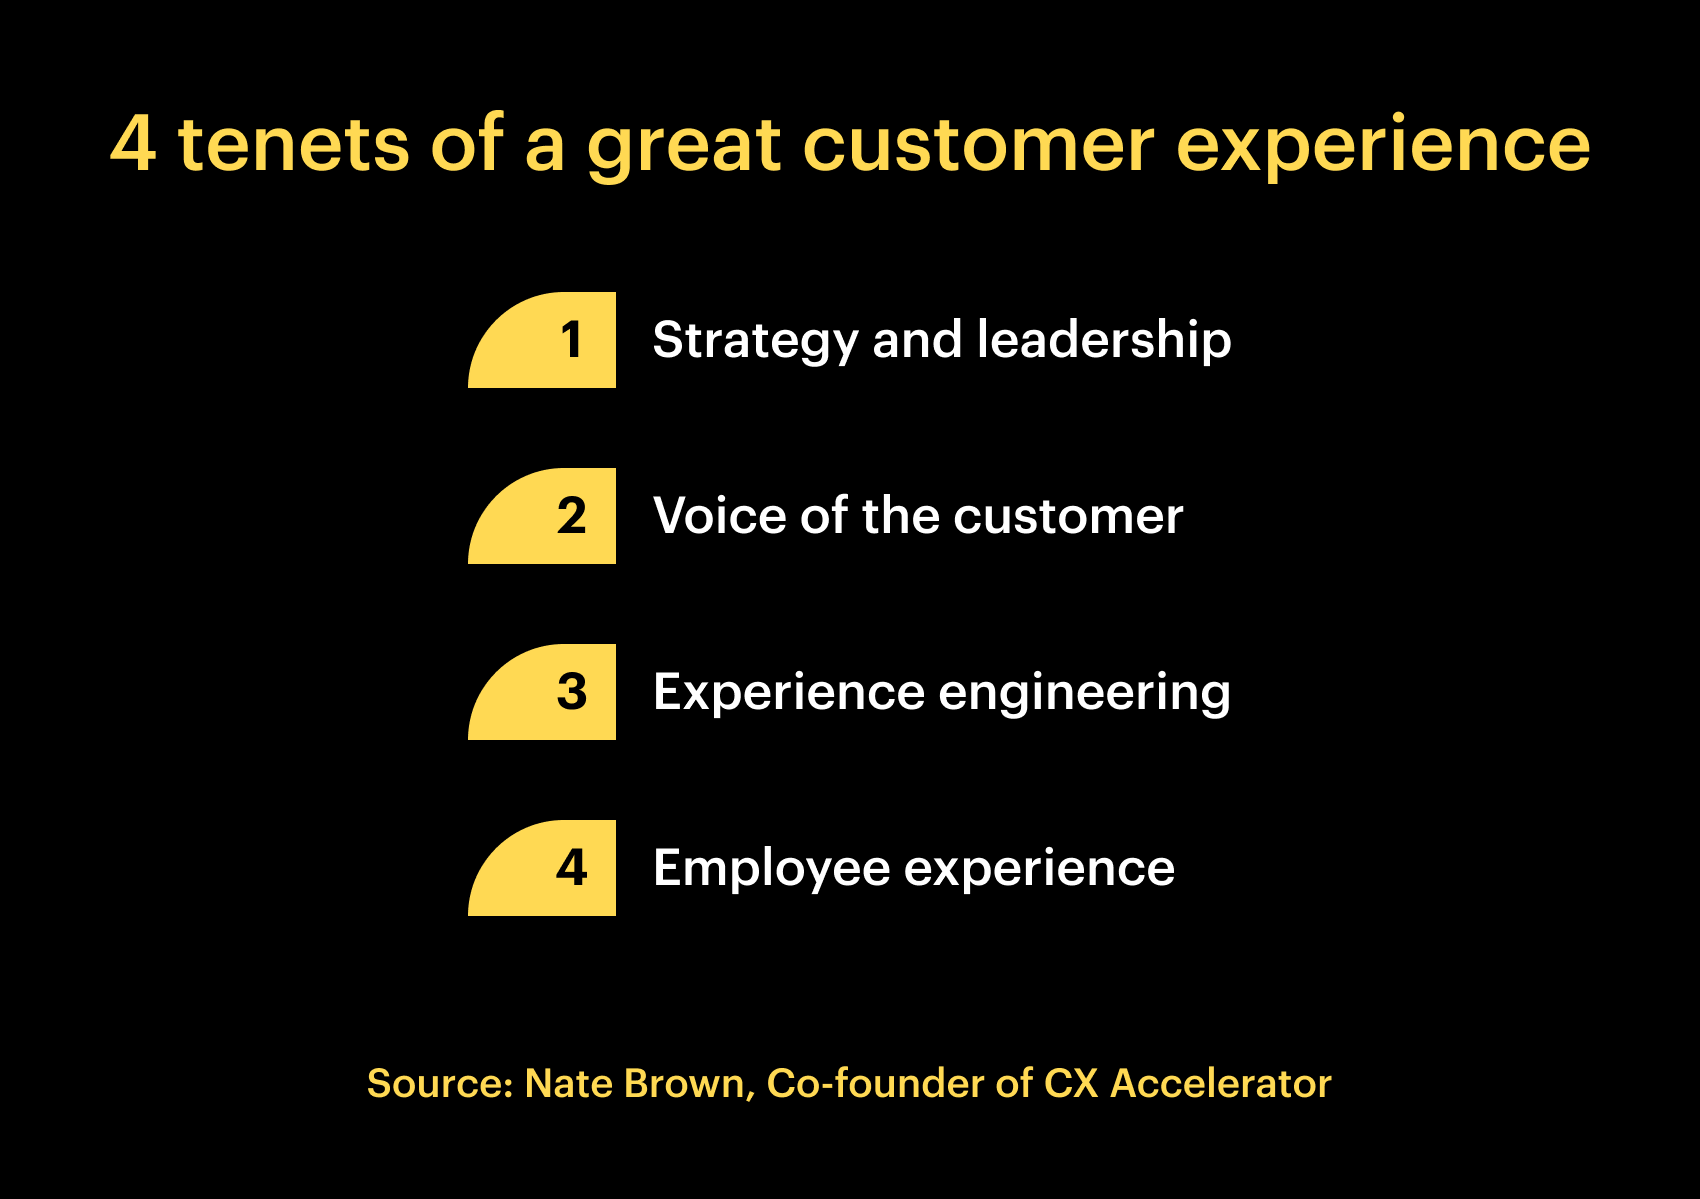 4 tenets of a great customer experience. 1 Strategy and leadership 2. Voice of the customer 3. Experience engineering 4. Employee experience